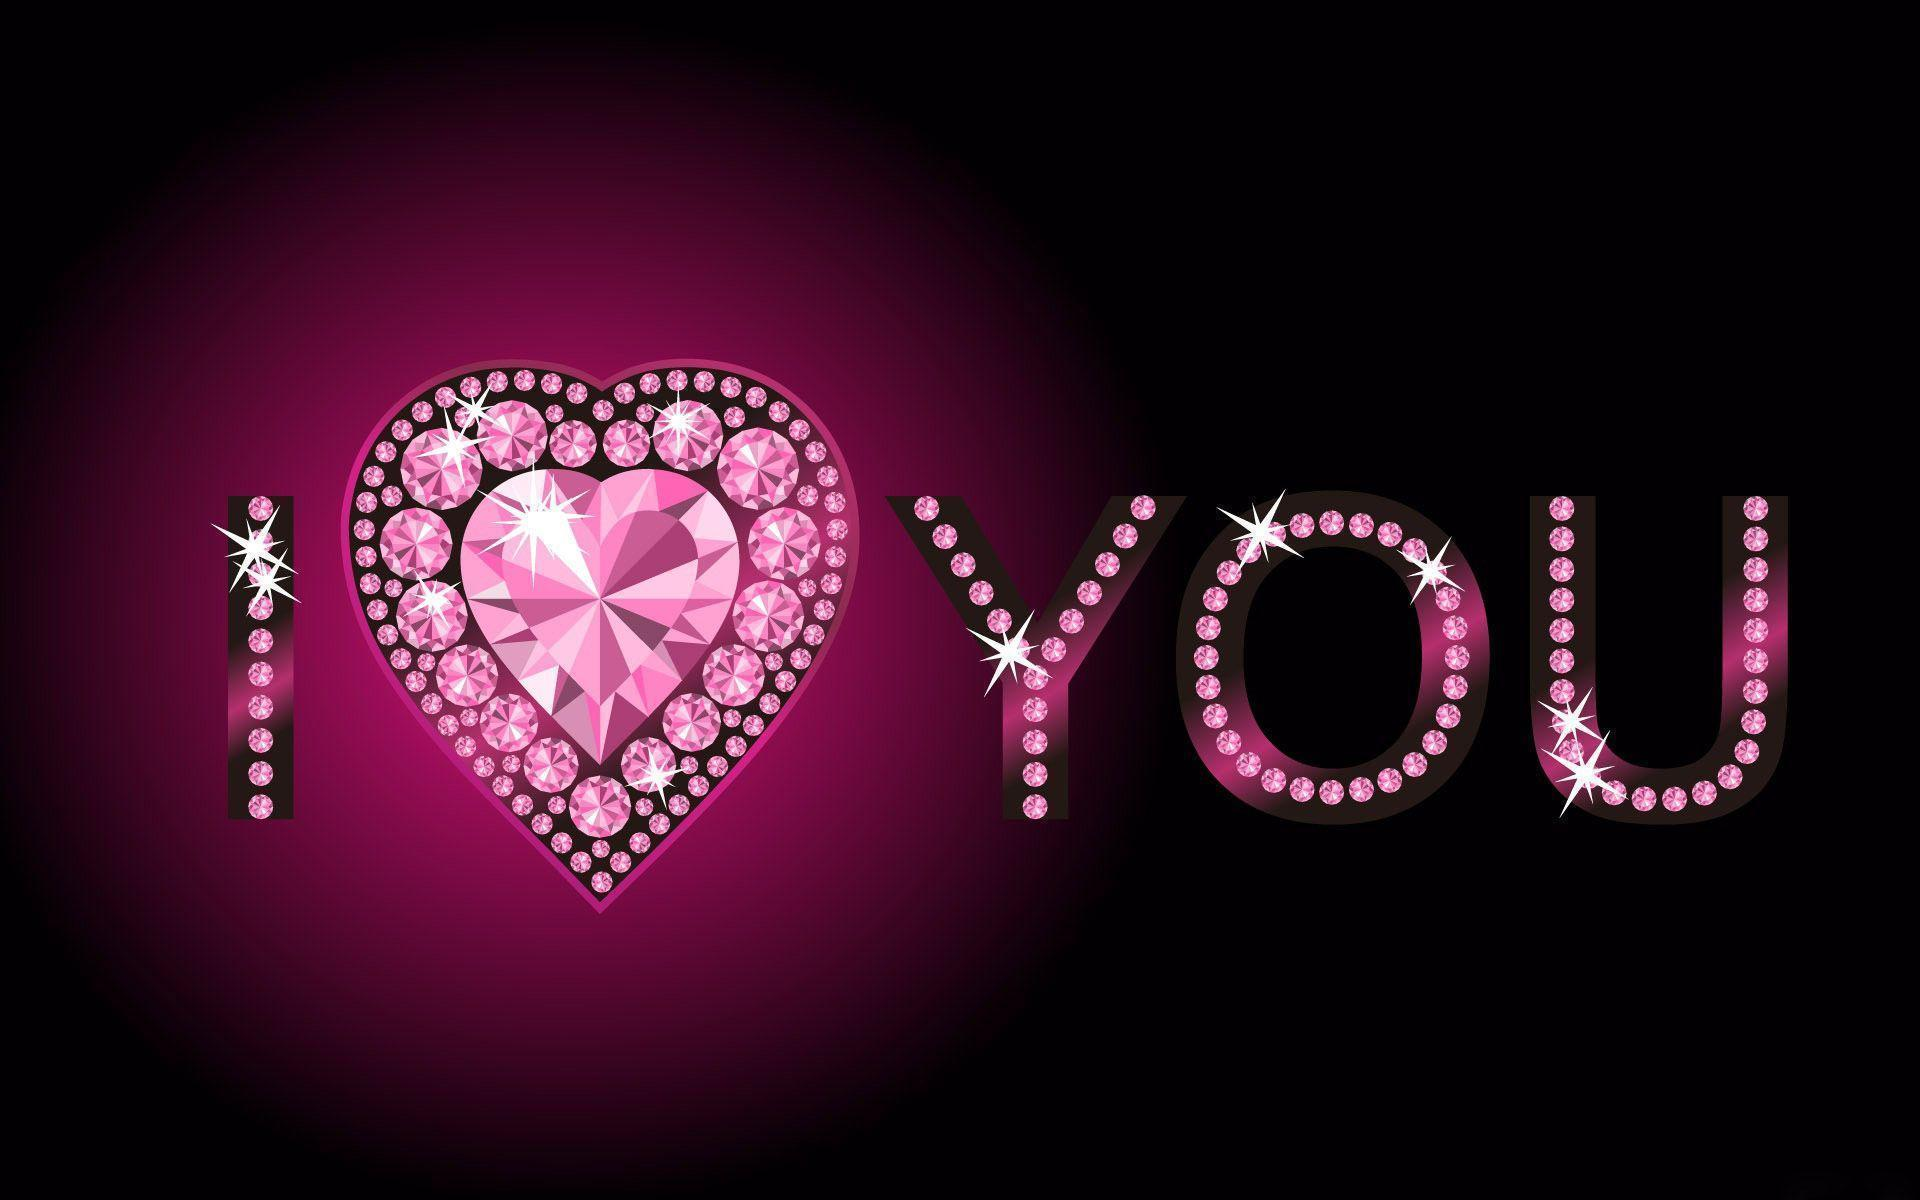 Wallpaper download love you - I Love You Wallpapers Pictures Images